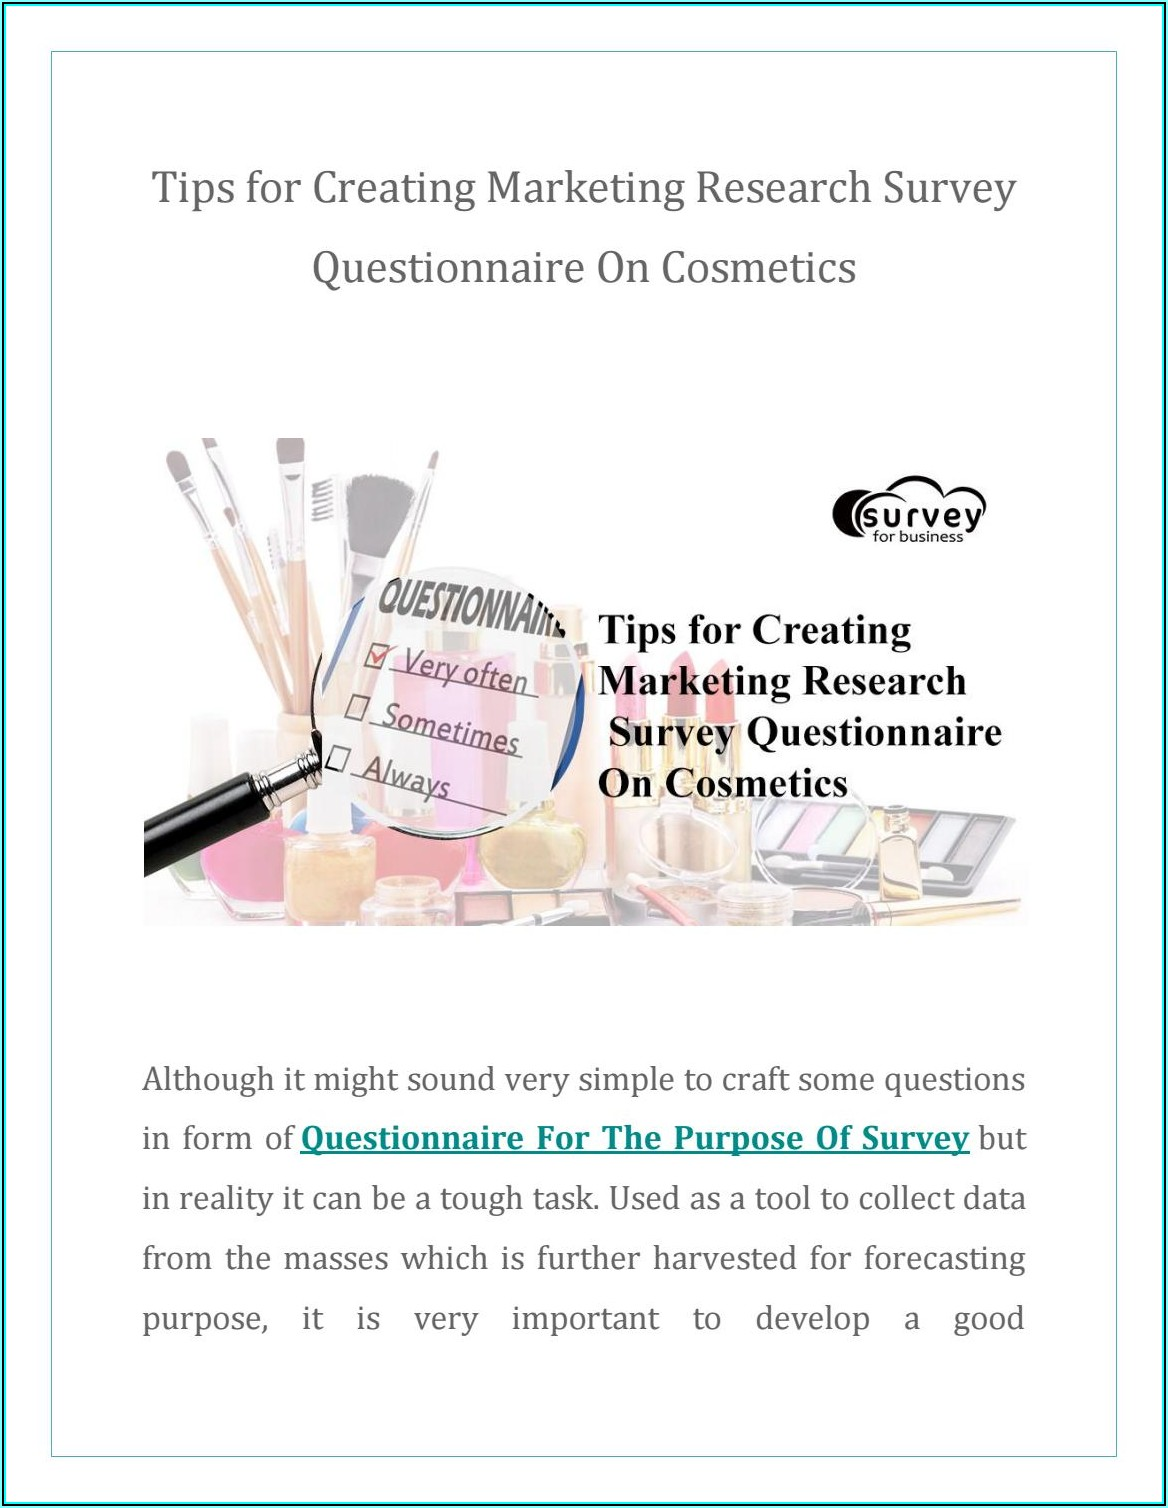 Marketing Research Survey Questionnaire On Cosmetics